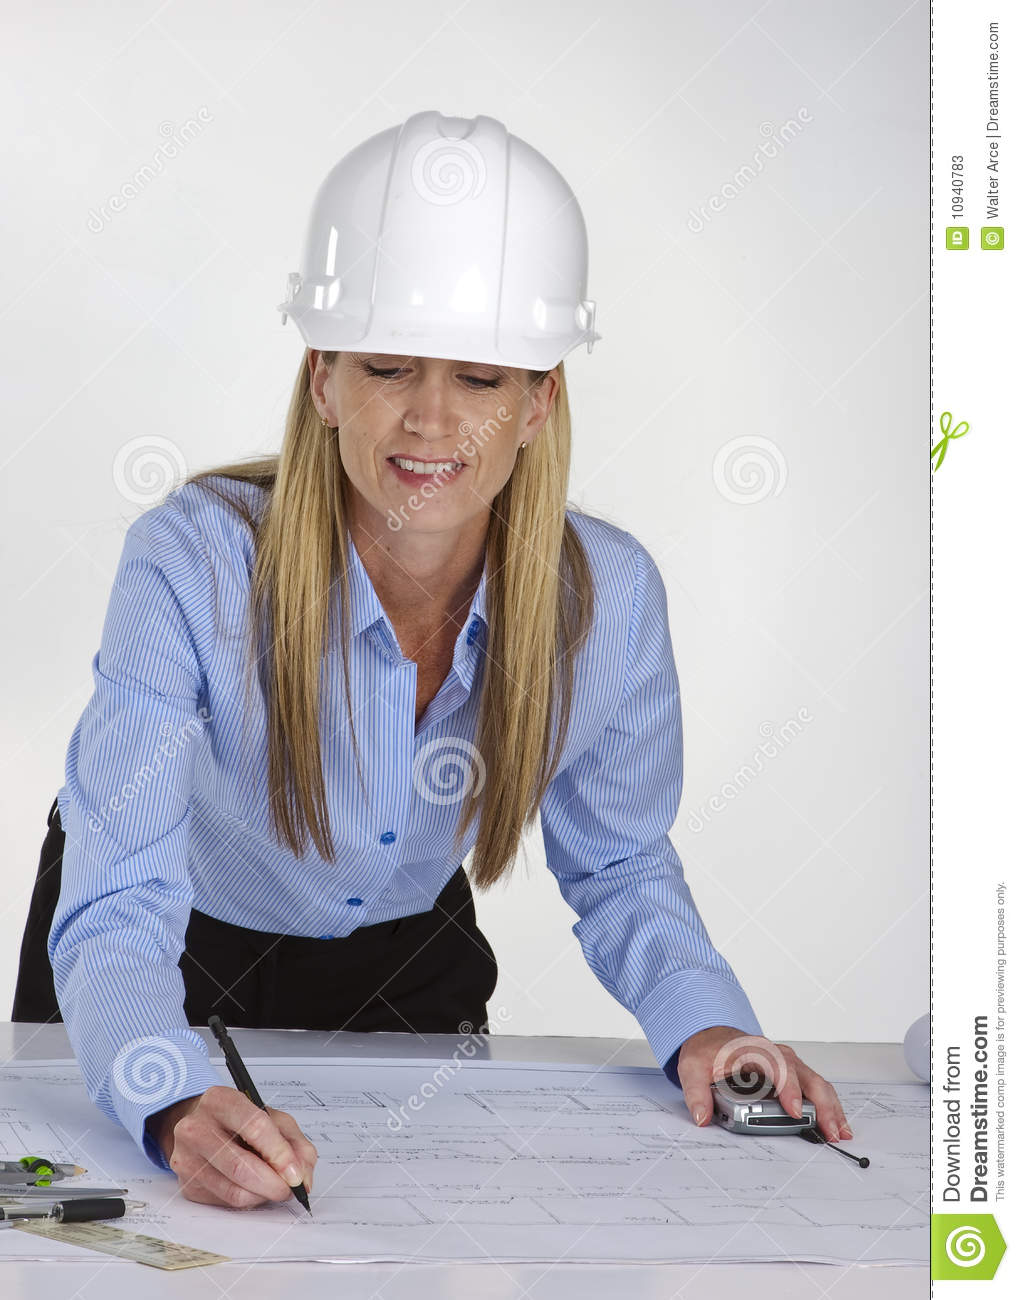 women construction industry dissertation